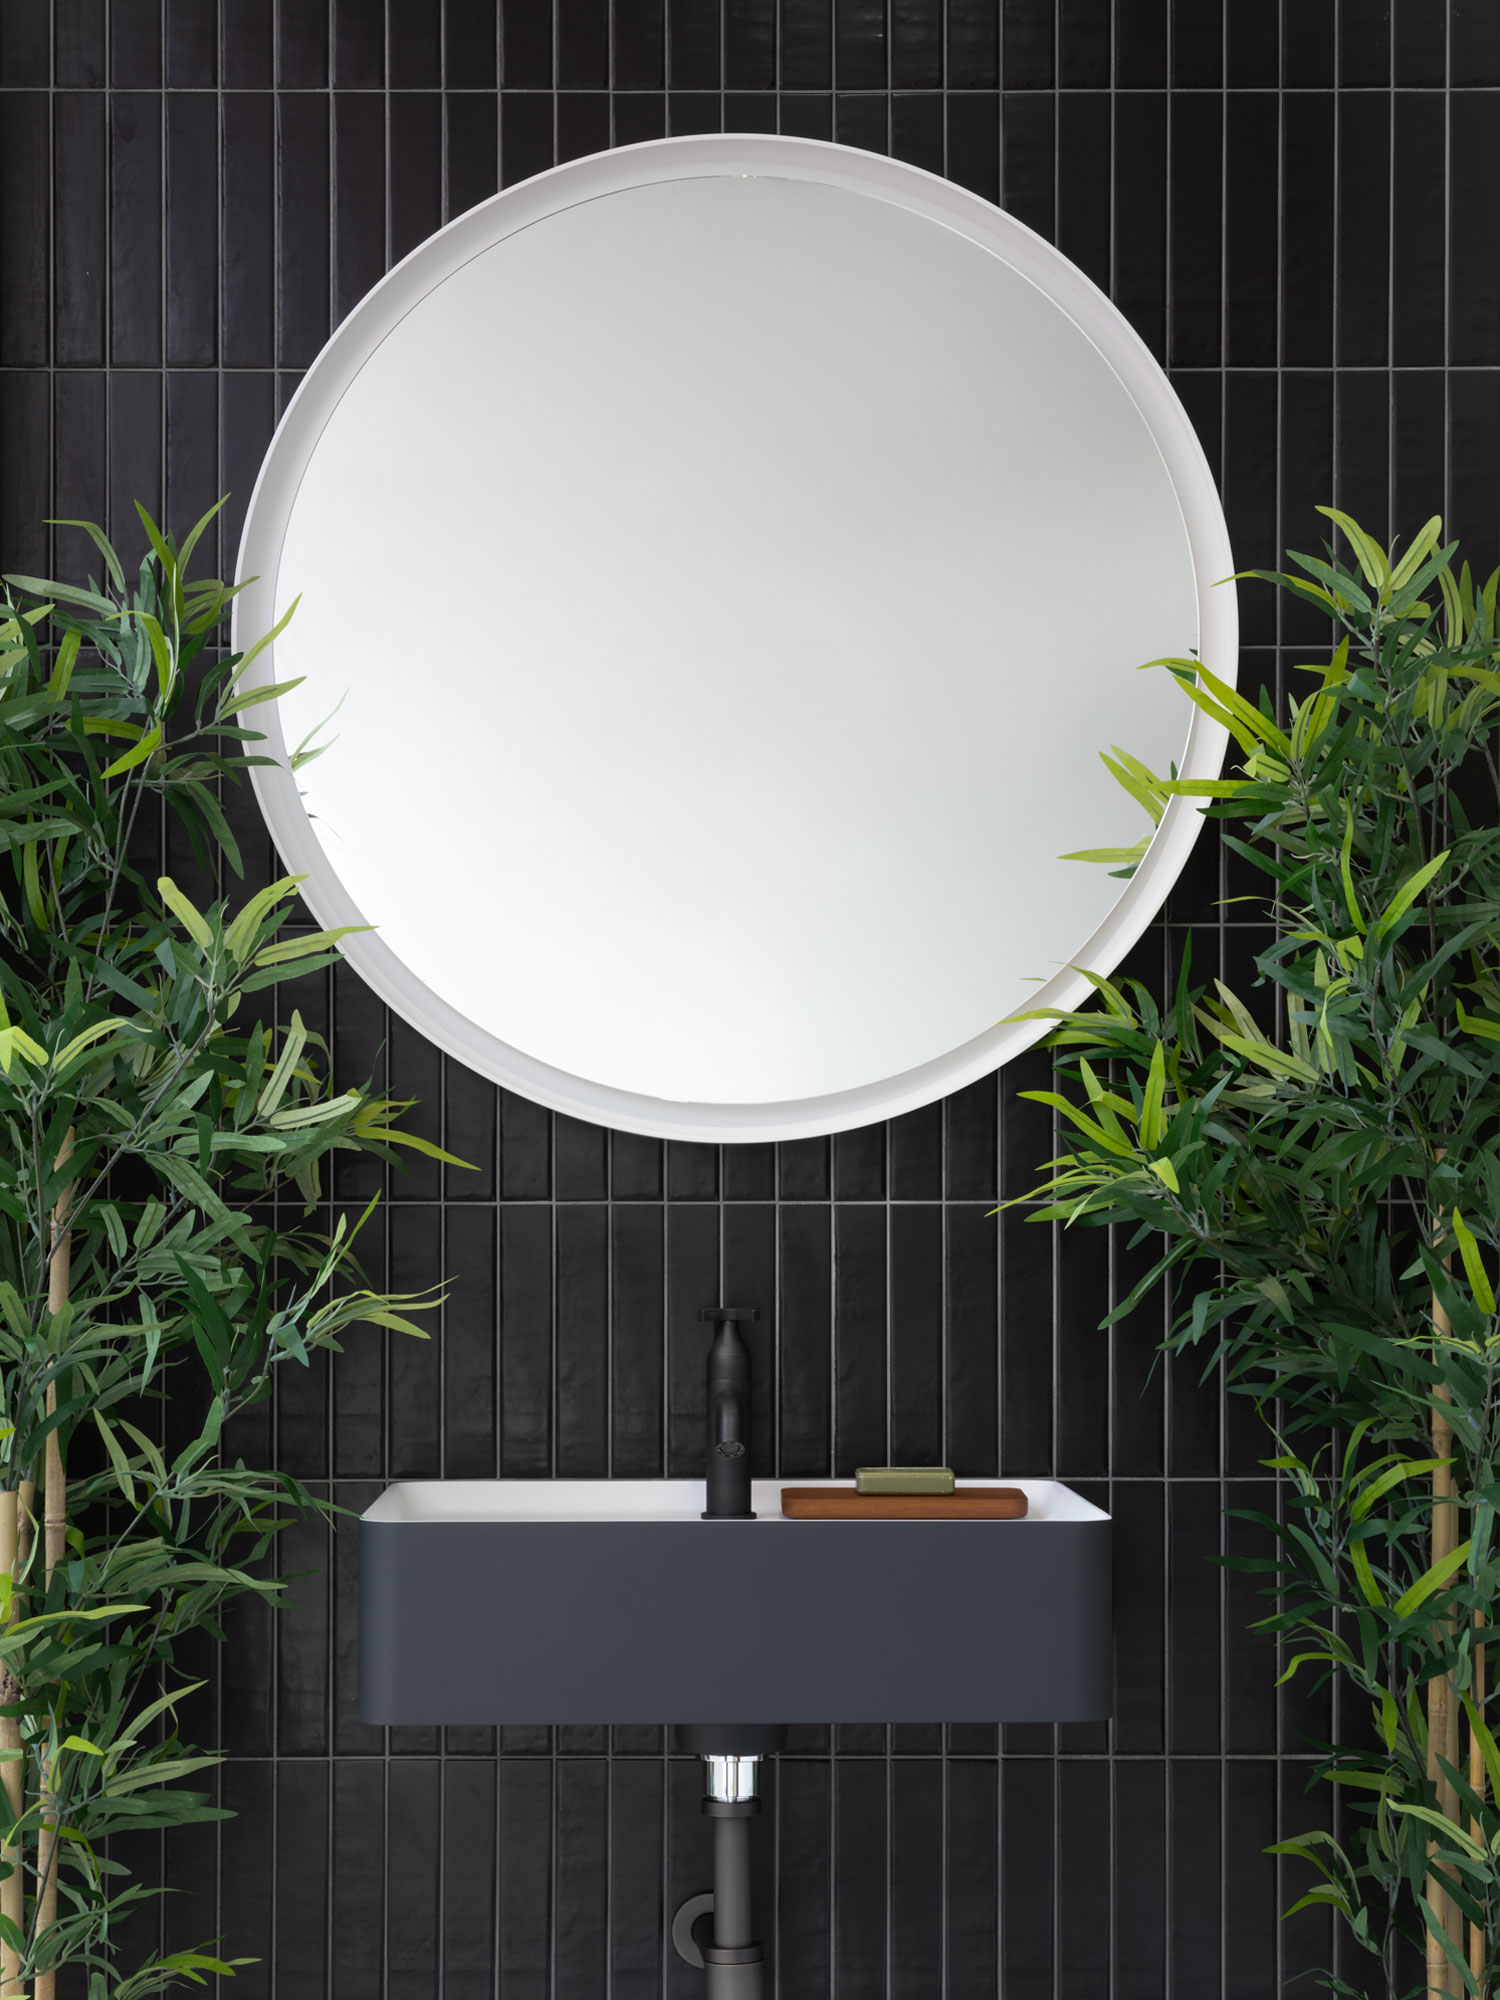 West One Bathrooms Inspiration Bold and beautiful image2a